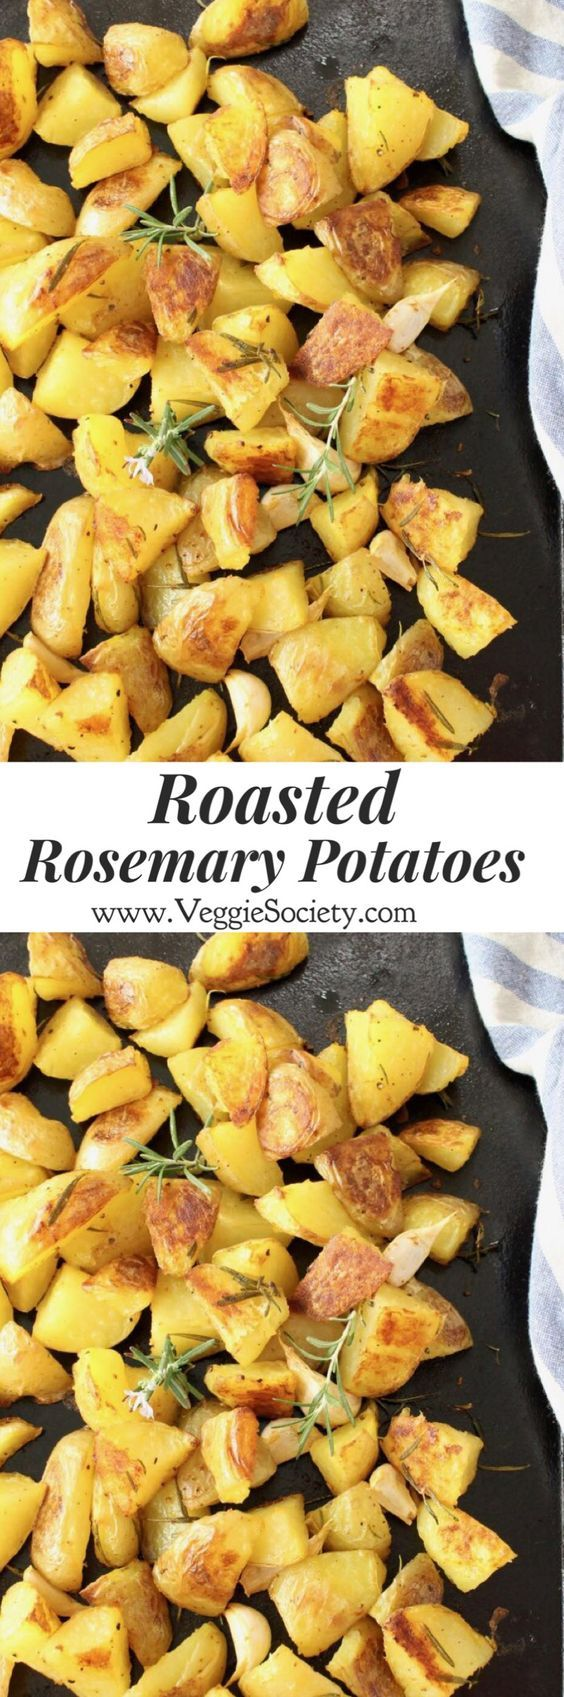 Quick Roasted Rosemary Potatoes with Garlic Recipe. To die for, vegan potatoes that are crispy at the edges and soft of the inside, perfect for your Thanksgiving and Christmas dinner | VeggieSociety.com @VeggieSociety #vegan #plantBased #sidedishes